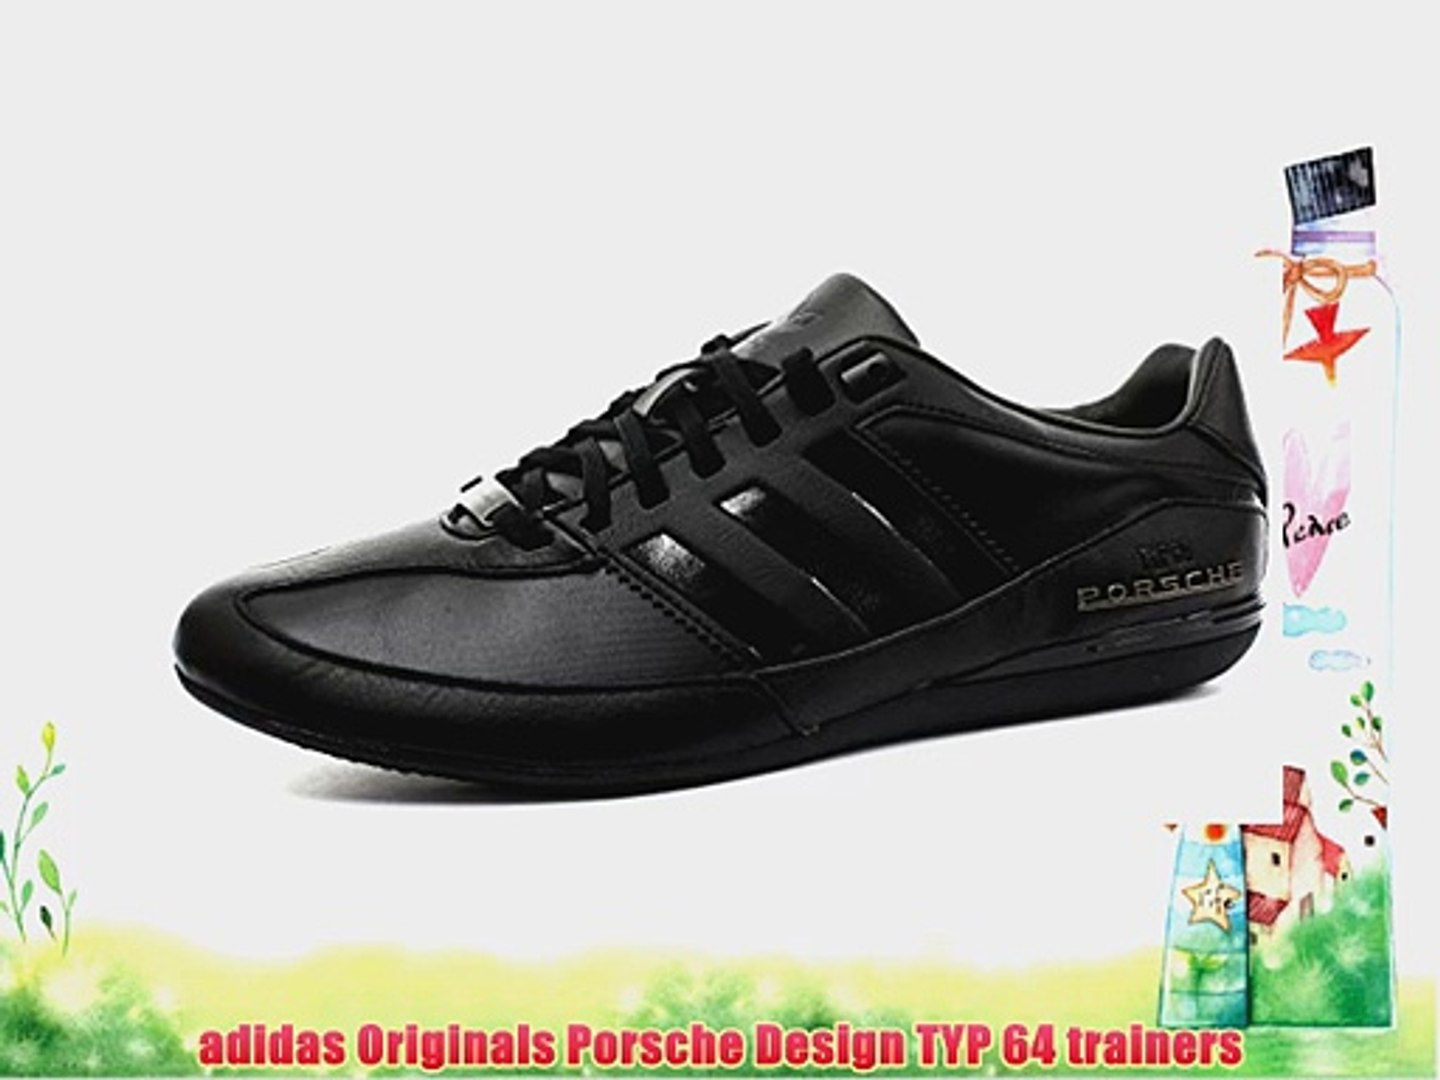 newest collection 50e00 d921f adidas Originals Porsche Design TYP 64 trainers